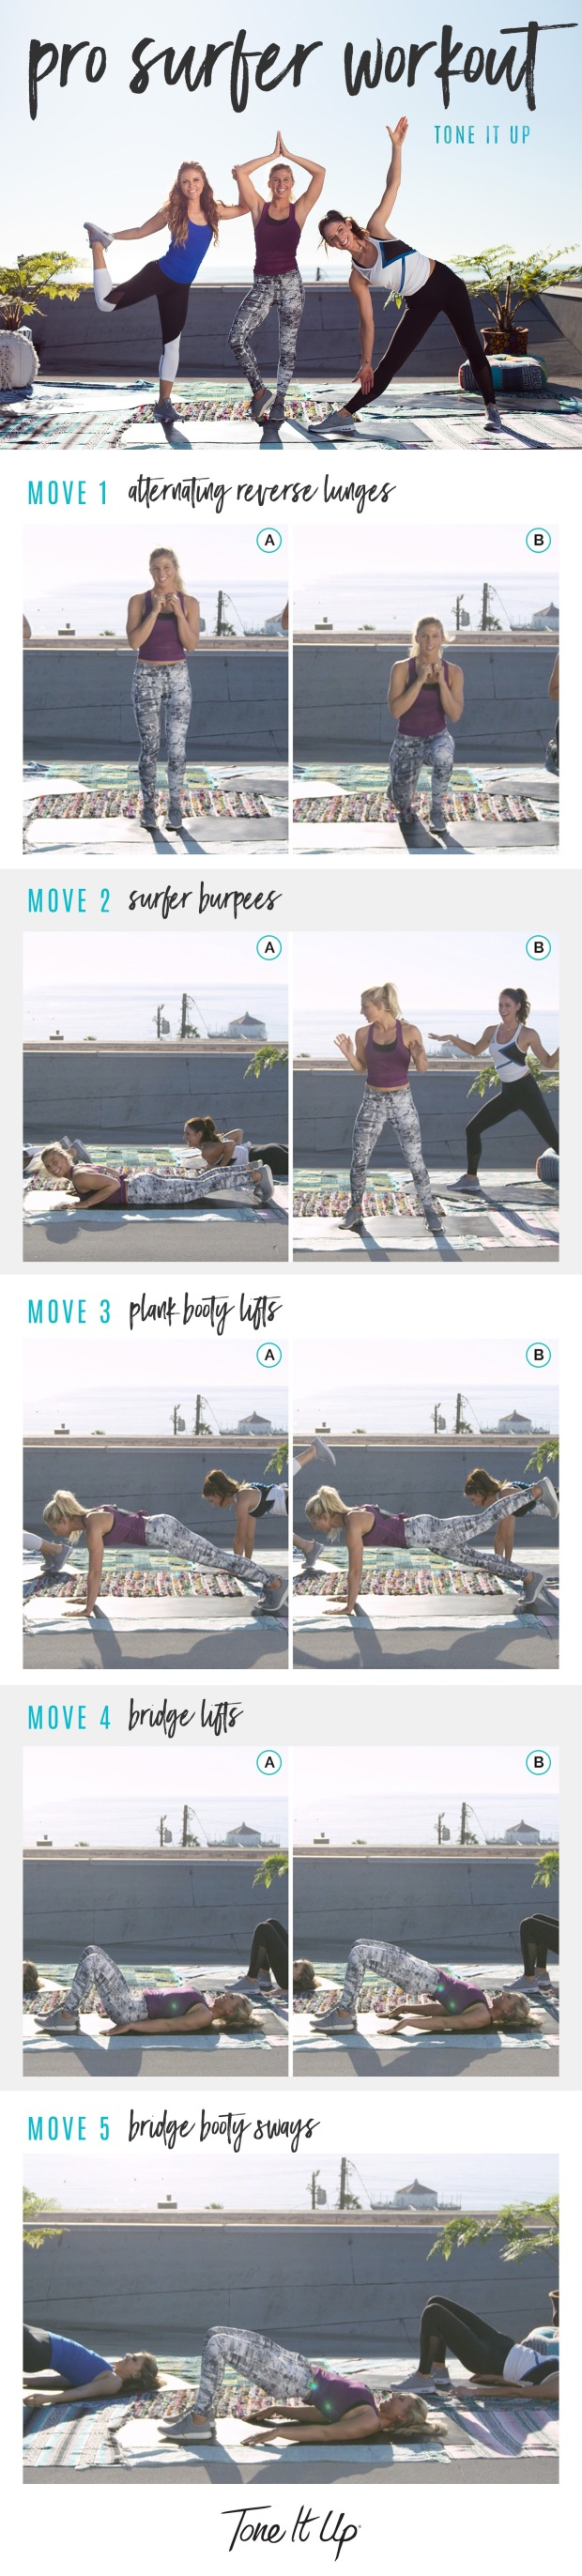 tone-it-up-surf-workout